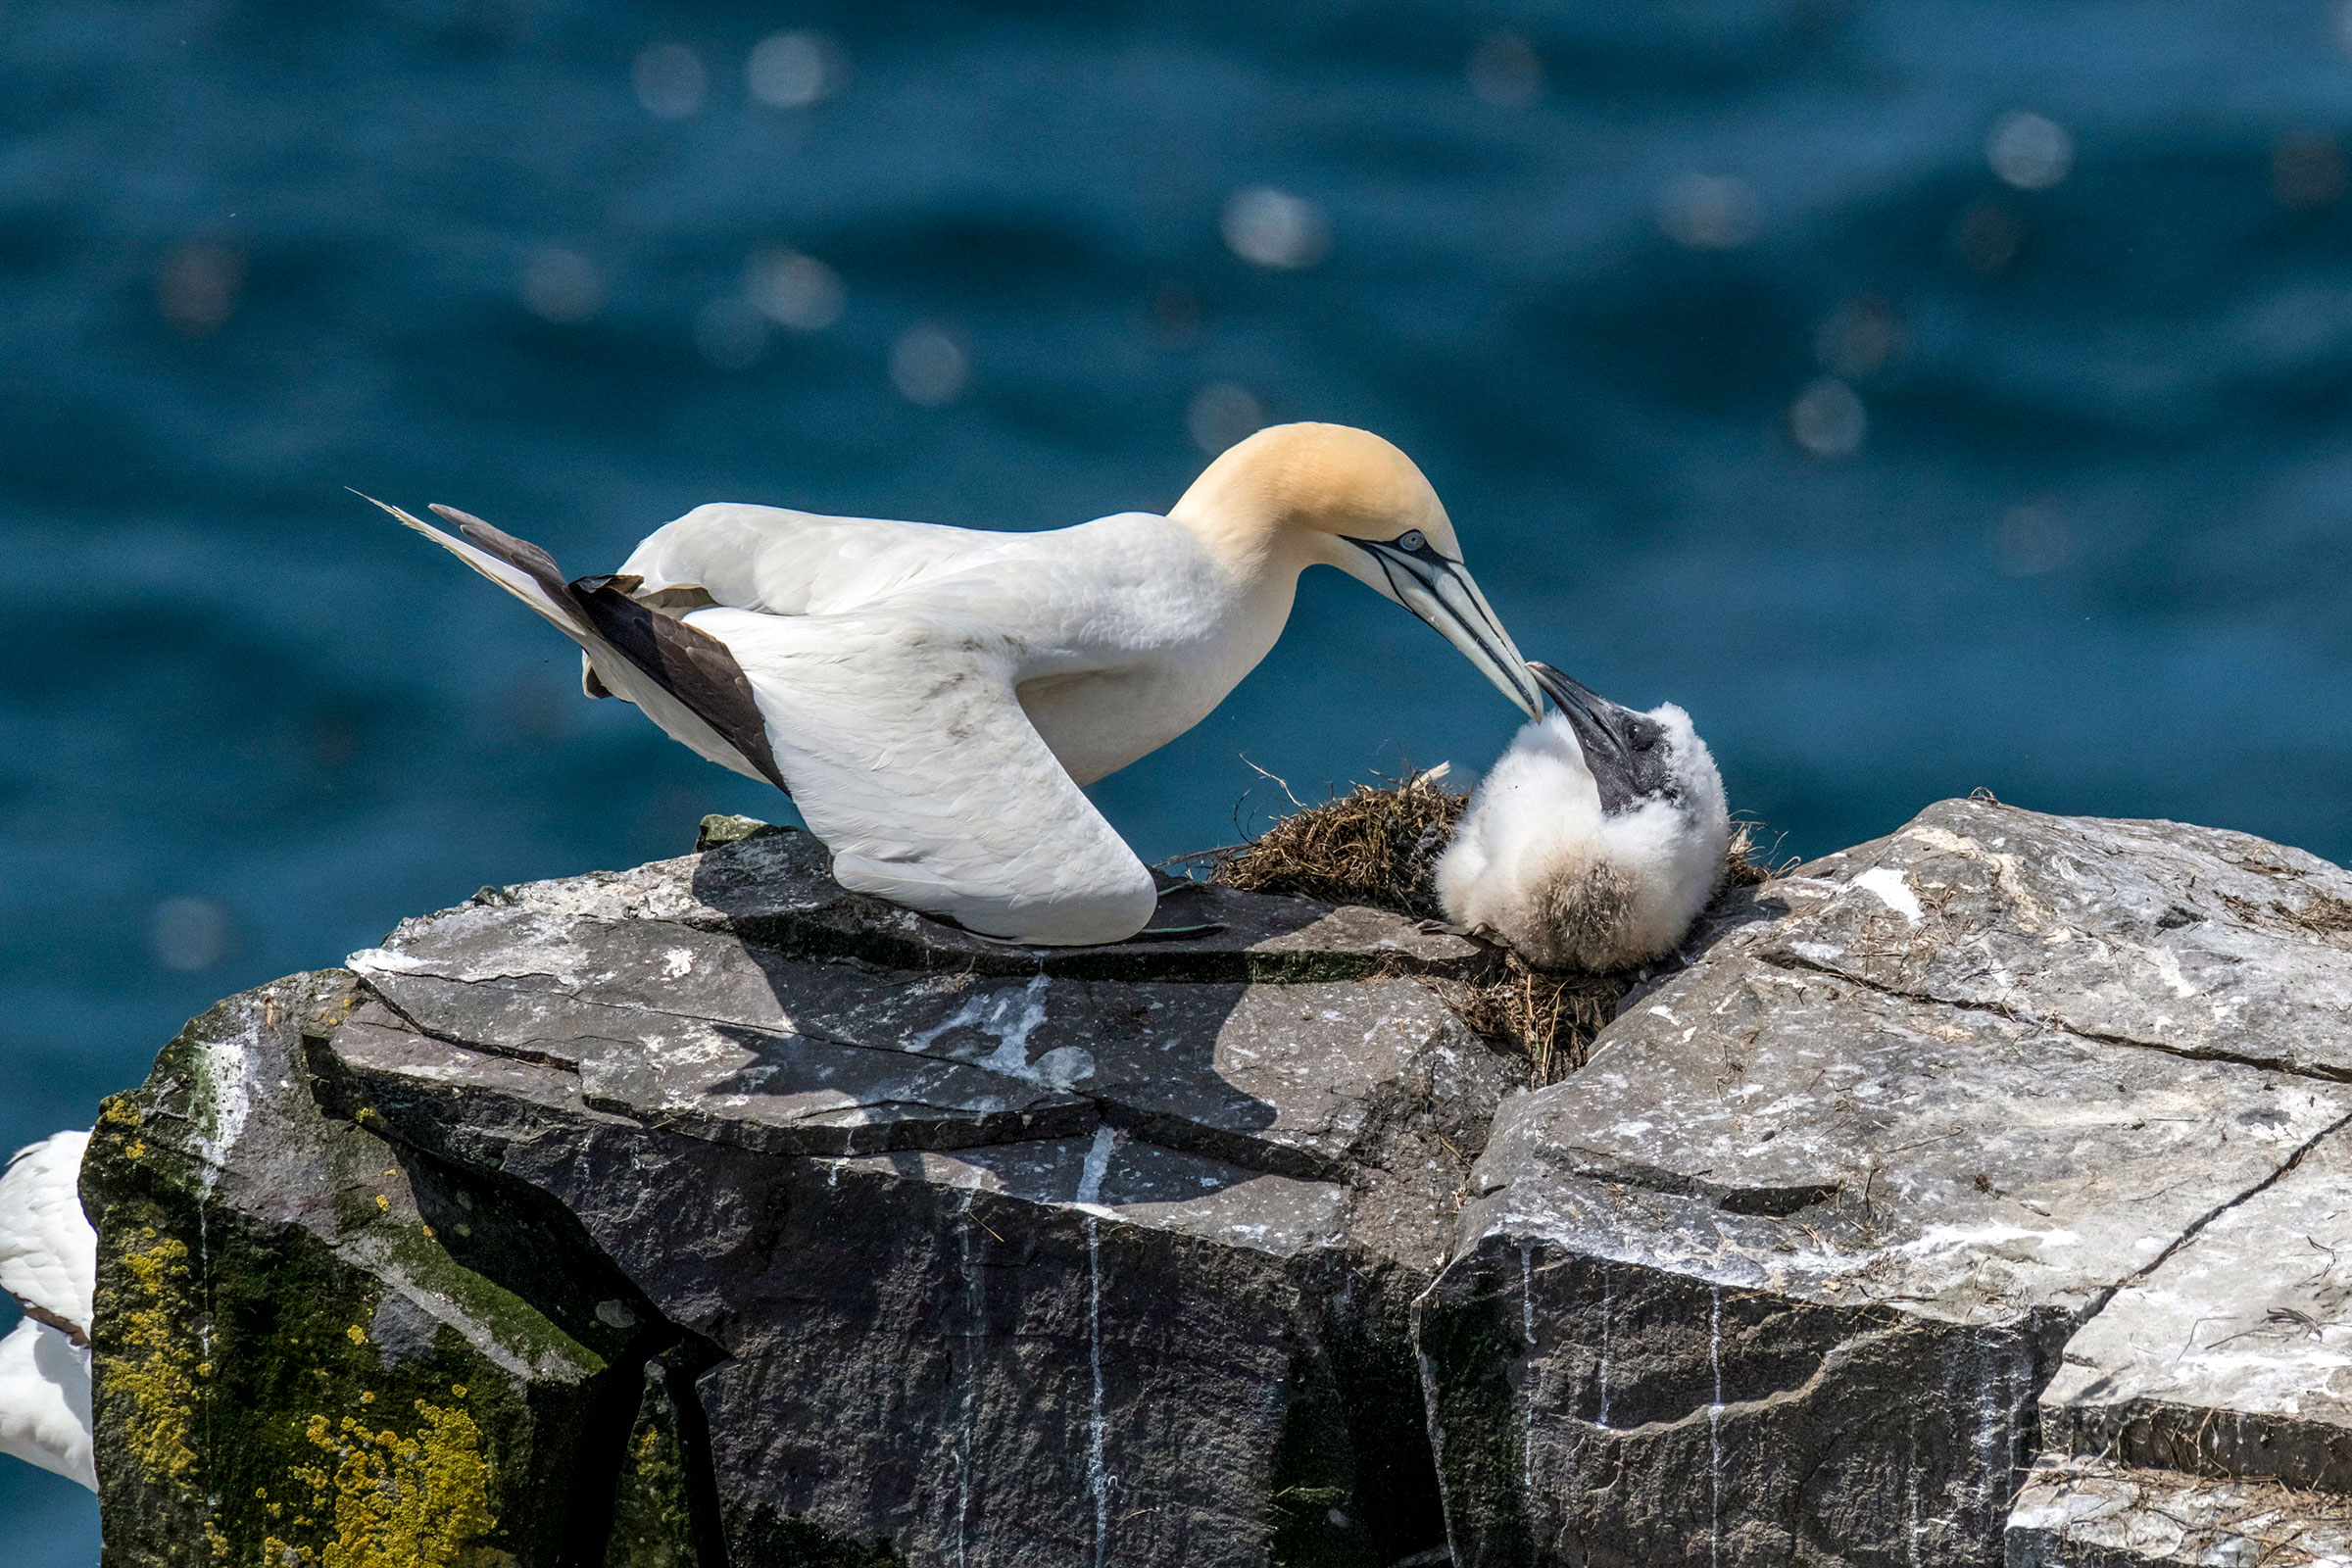 Northern Gannets at Cape St. Mary's Ecological Reserve. Sean O'Neill/Alamy